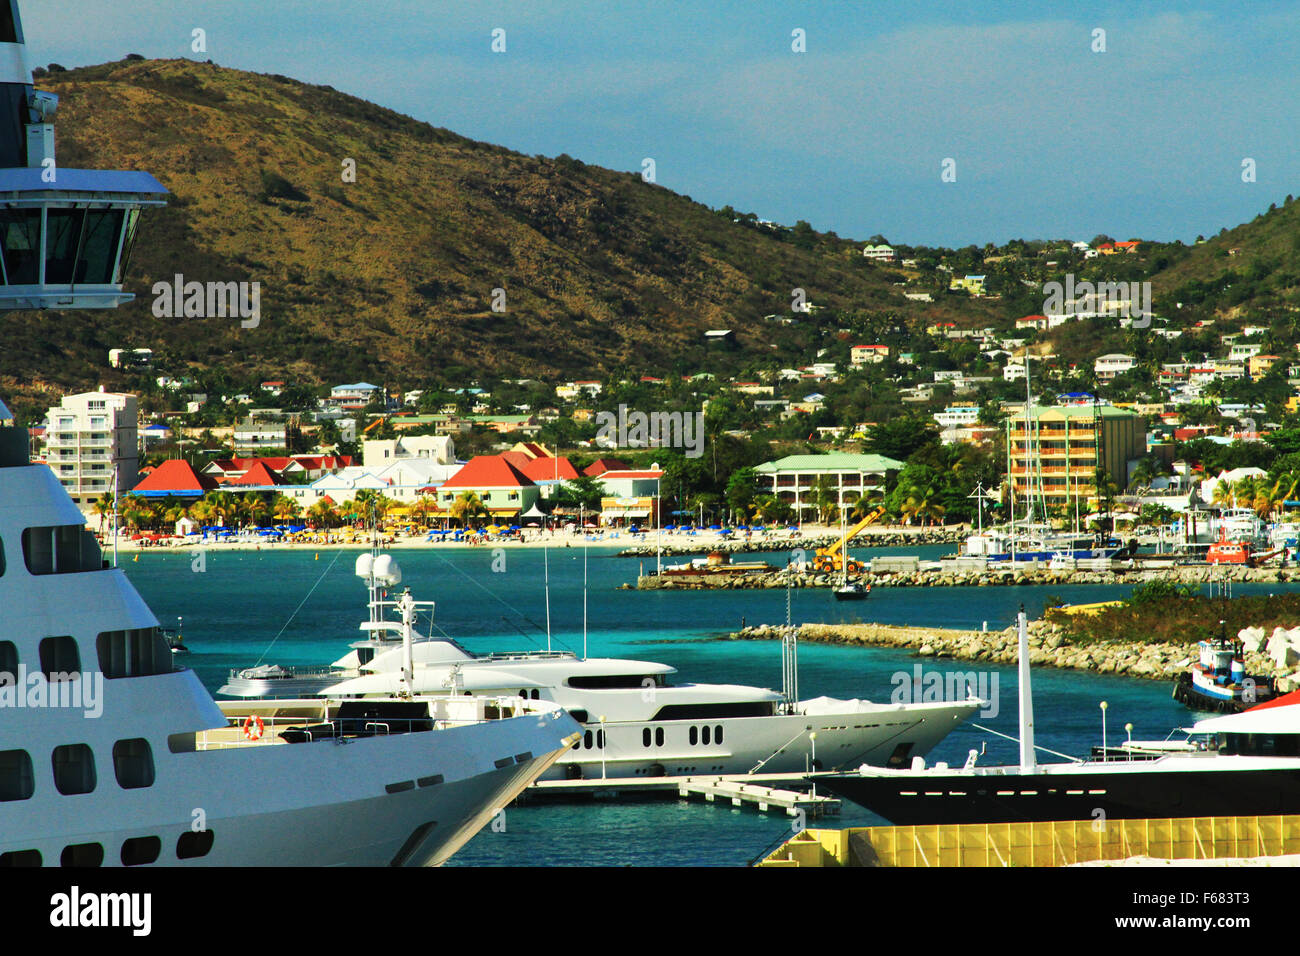 cruise ship and boats